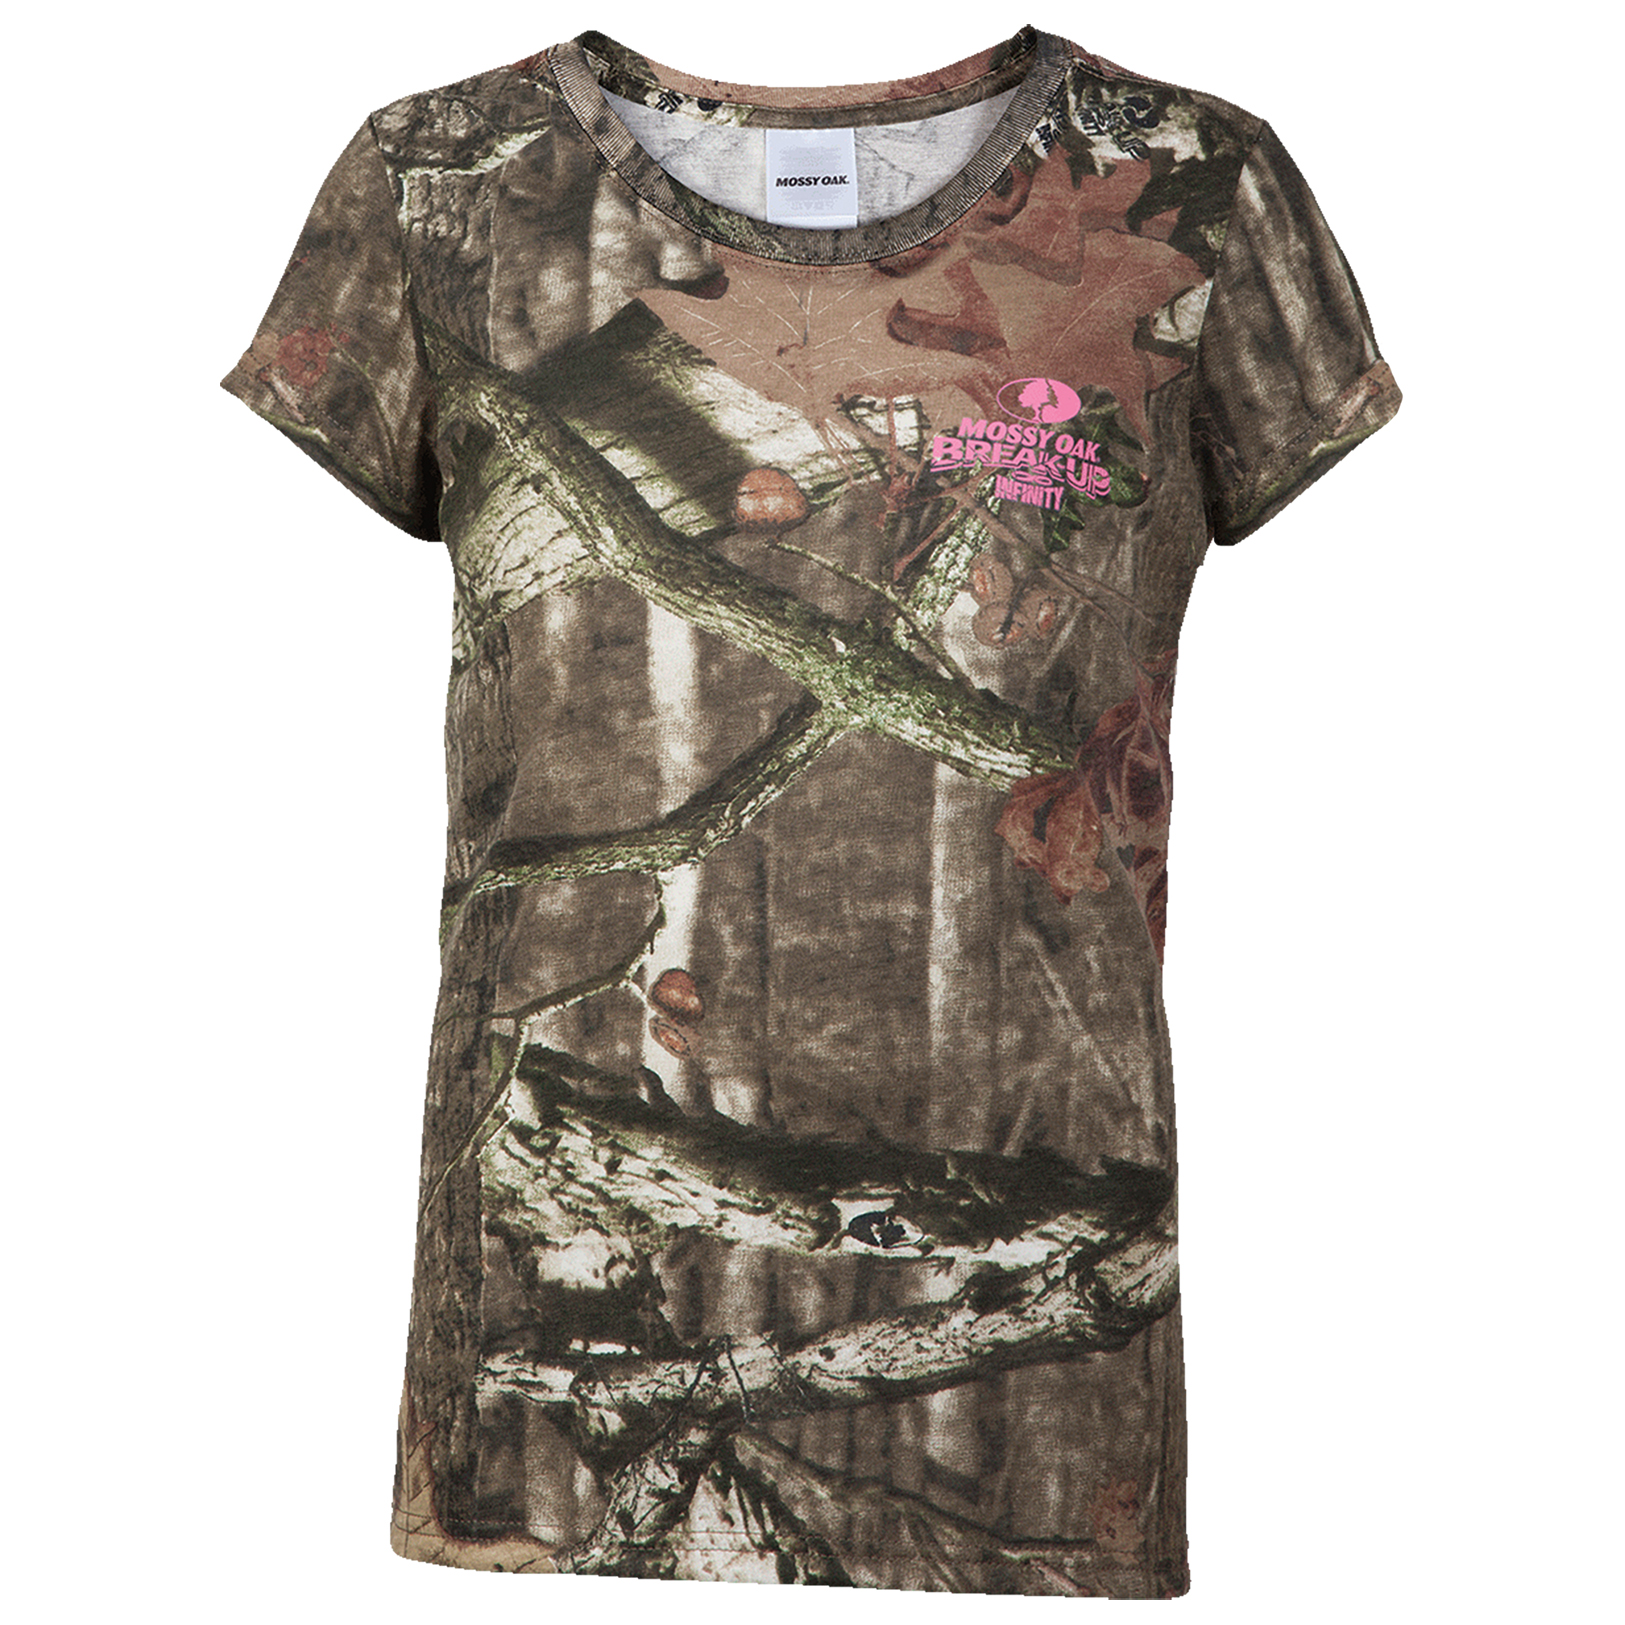 Mossy Oak Women's Camo Short-Sleeve Tee